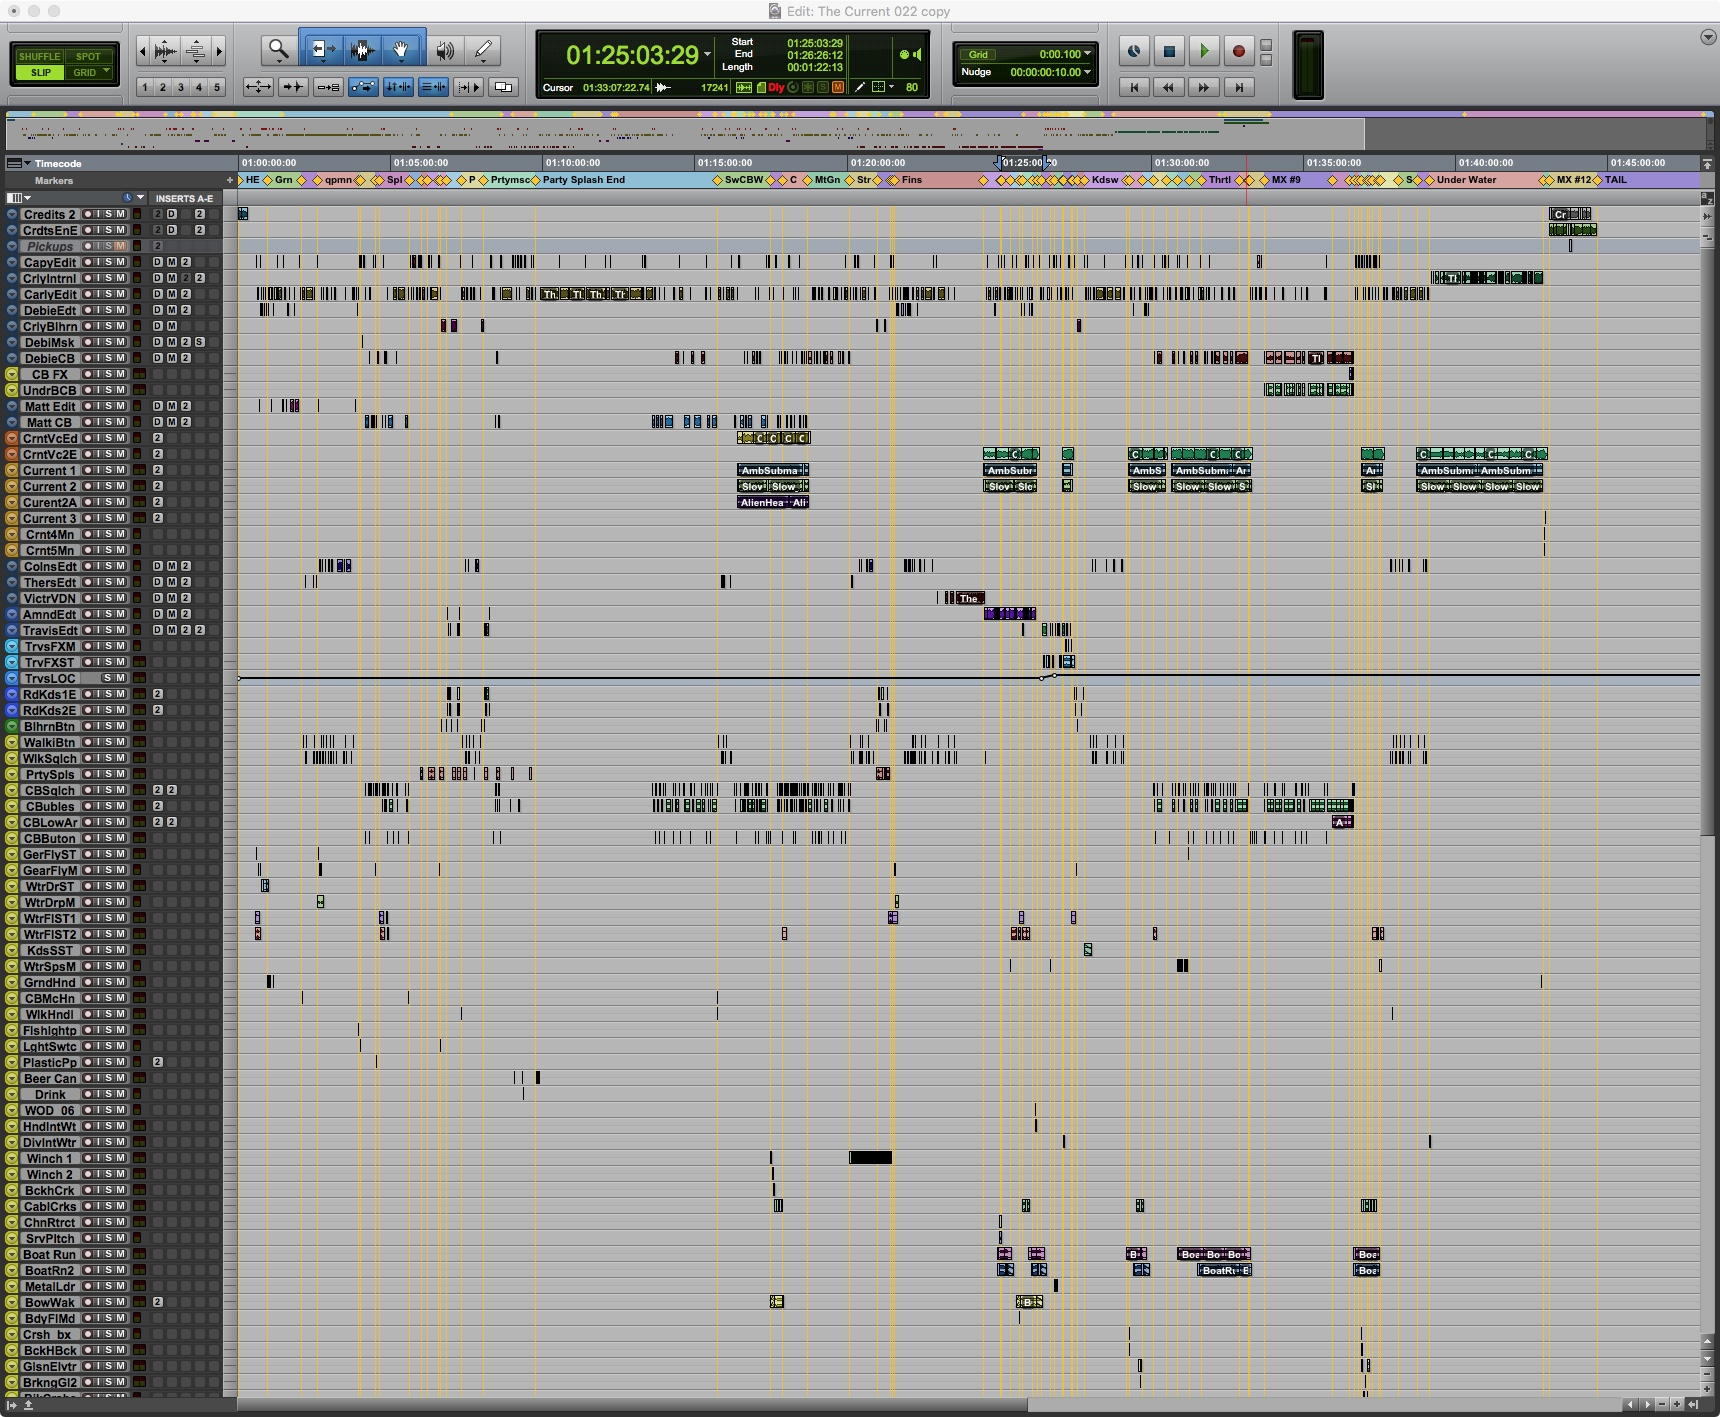 Well, that's actually only about half of it. All of the yellow tracks are sound effects. There's another screen full below that, including the music. Dialogue is up top.